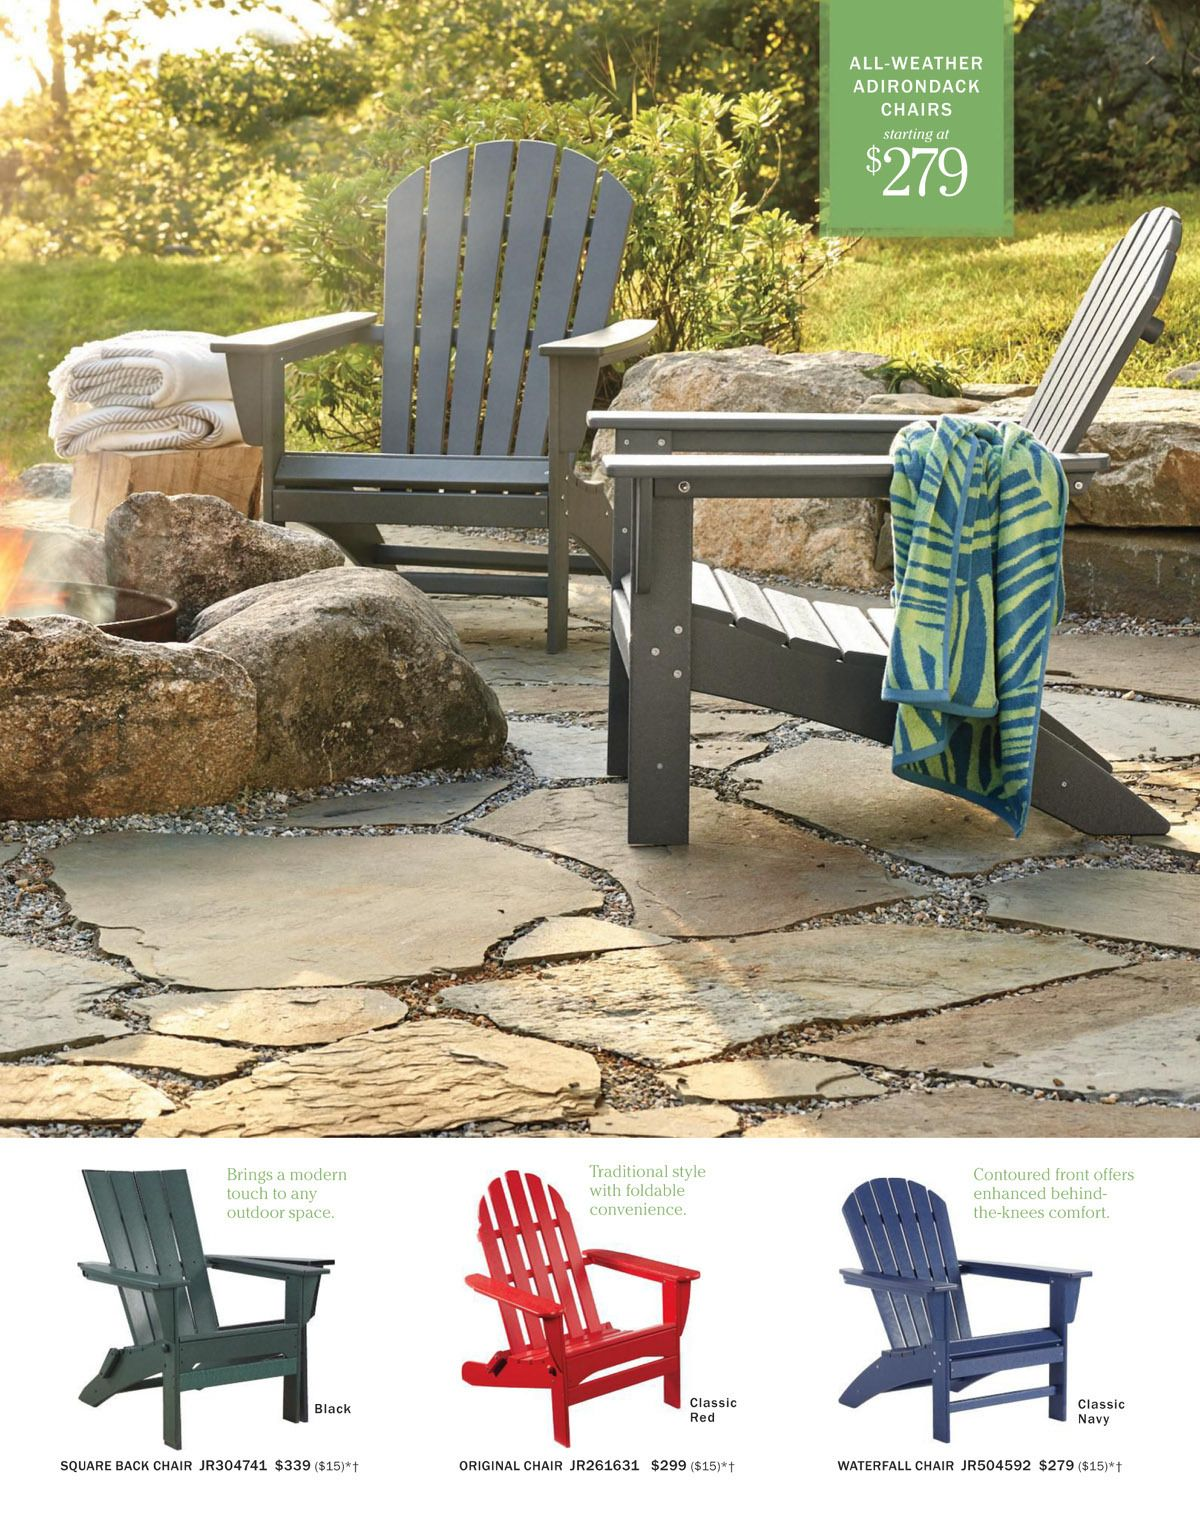 L L Bean Catalog Jr Summer Home Patio Furniture Collection